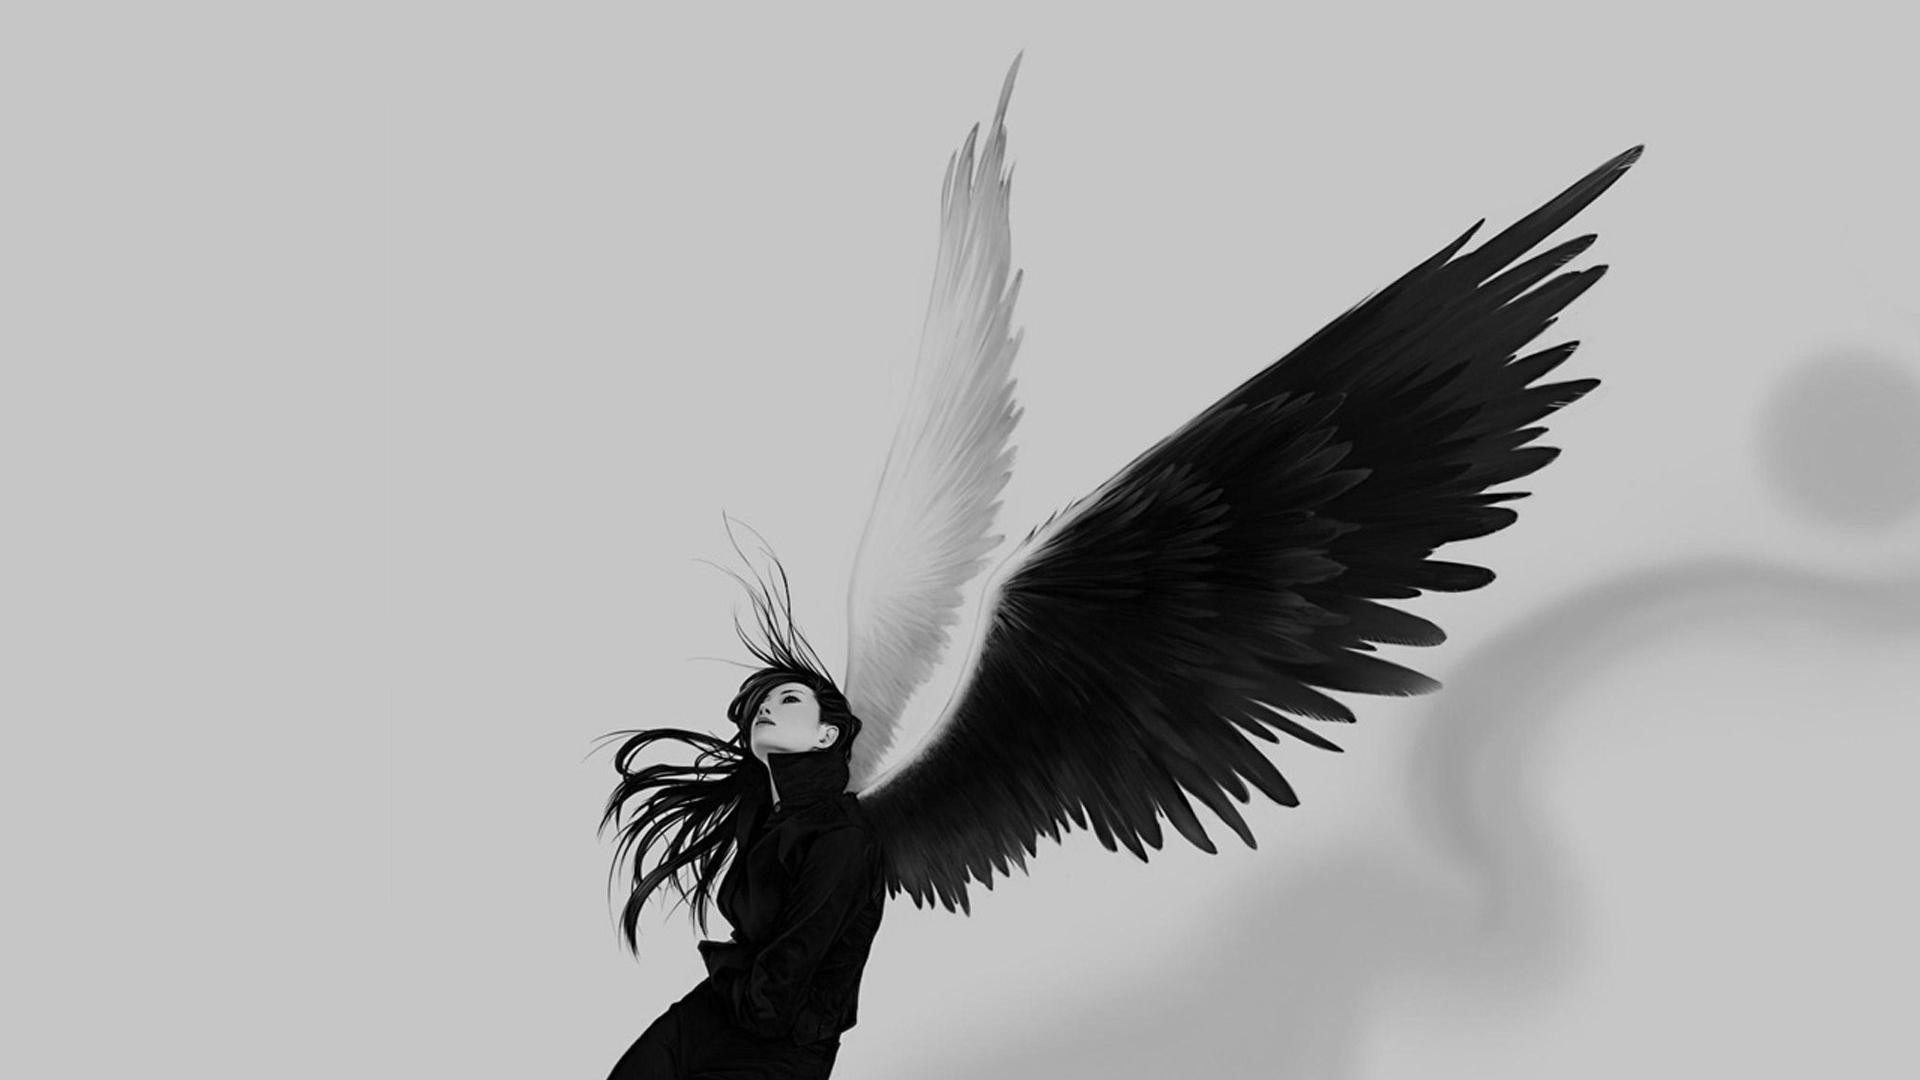 1920x1080 Angel wings girl